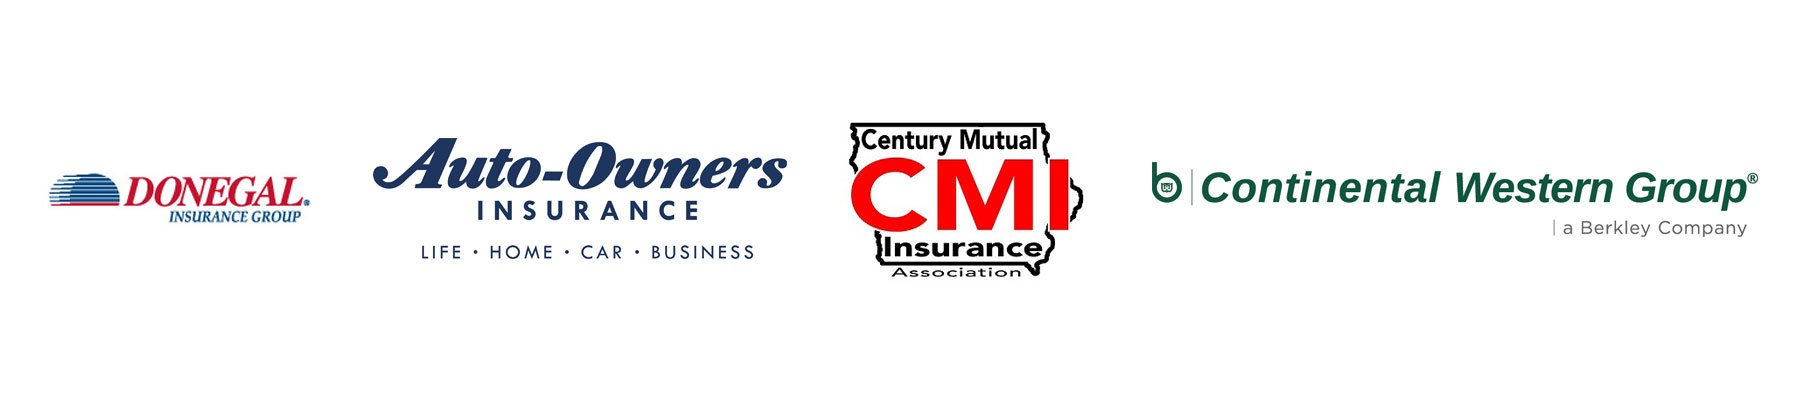 Gonegal Insurance Group Logo, Auto-Owners Insurance Logo, Century Mutual Insurance Association Logo, Continental Western Group Logo, Insurance Services